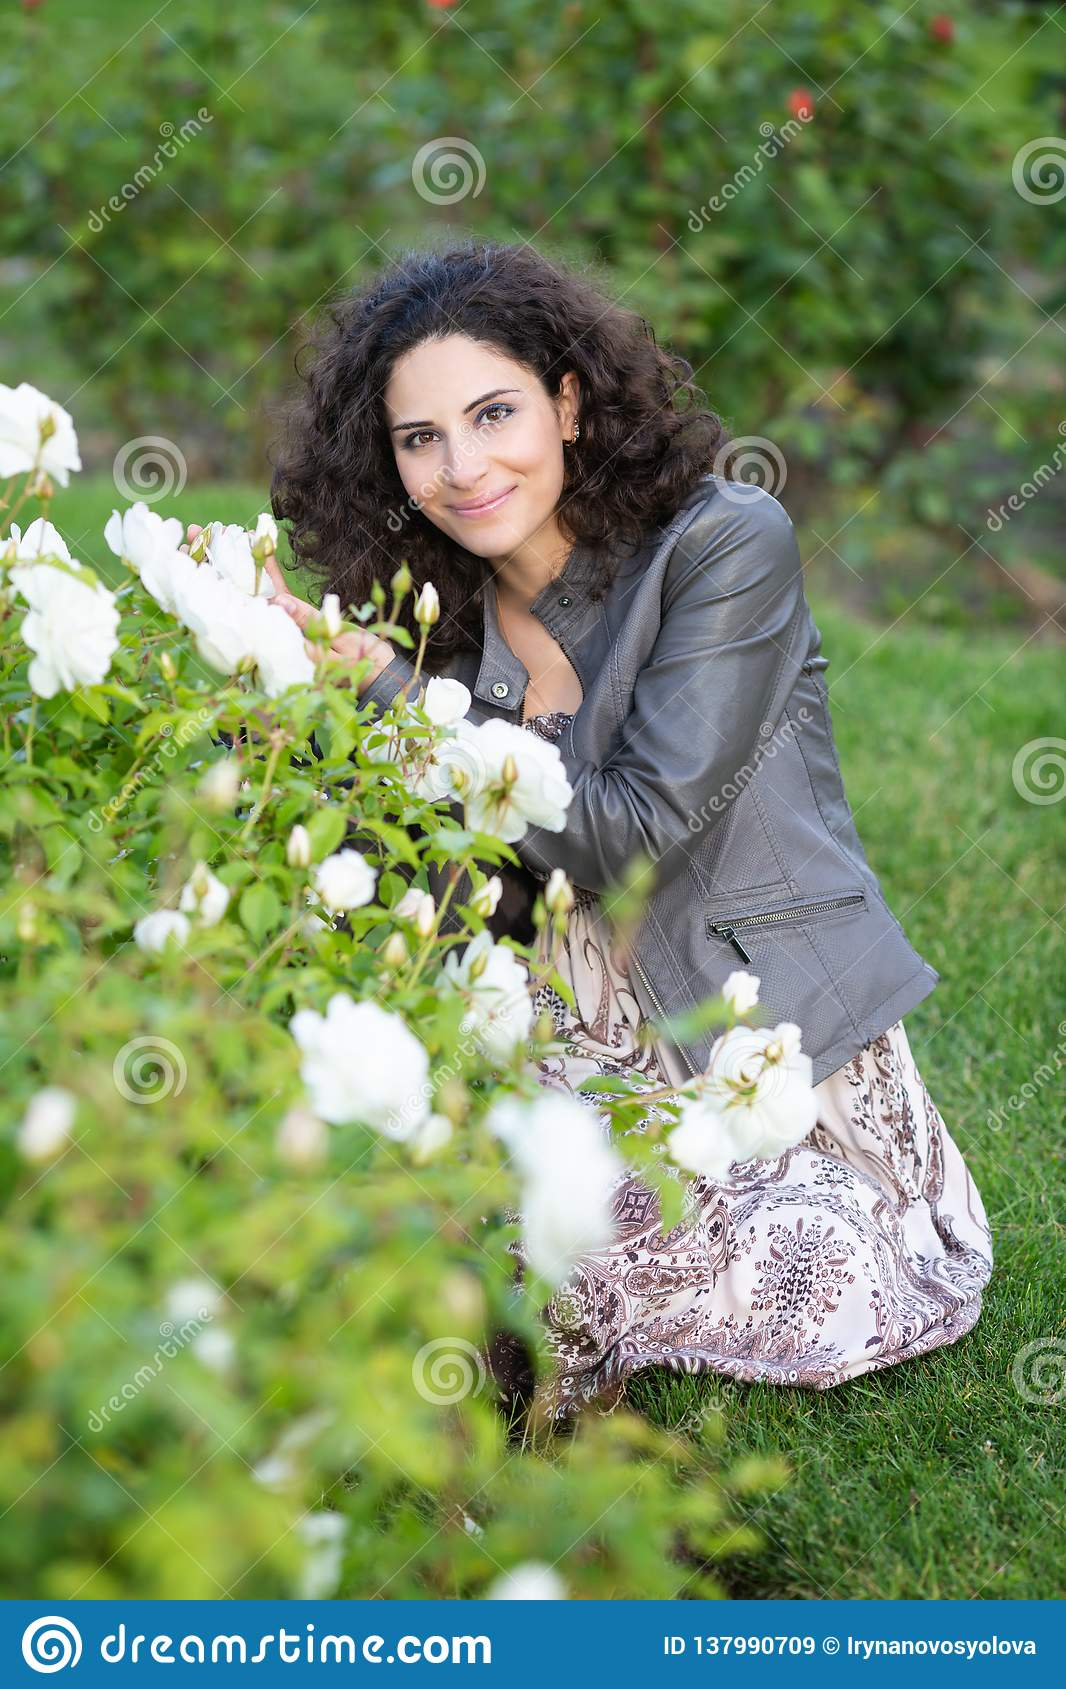 Caucasian brunette young woman sitting on green grass in a rose garden near yellow roses bush, smiling with teeth, looking to the